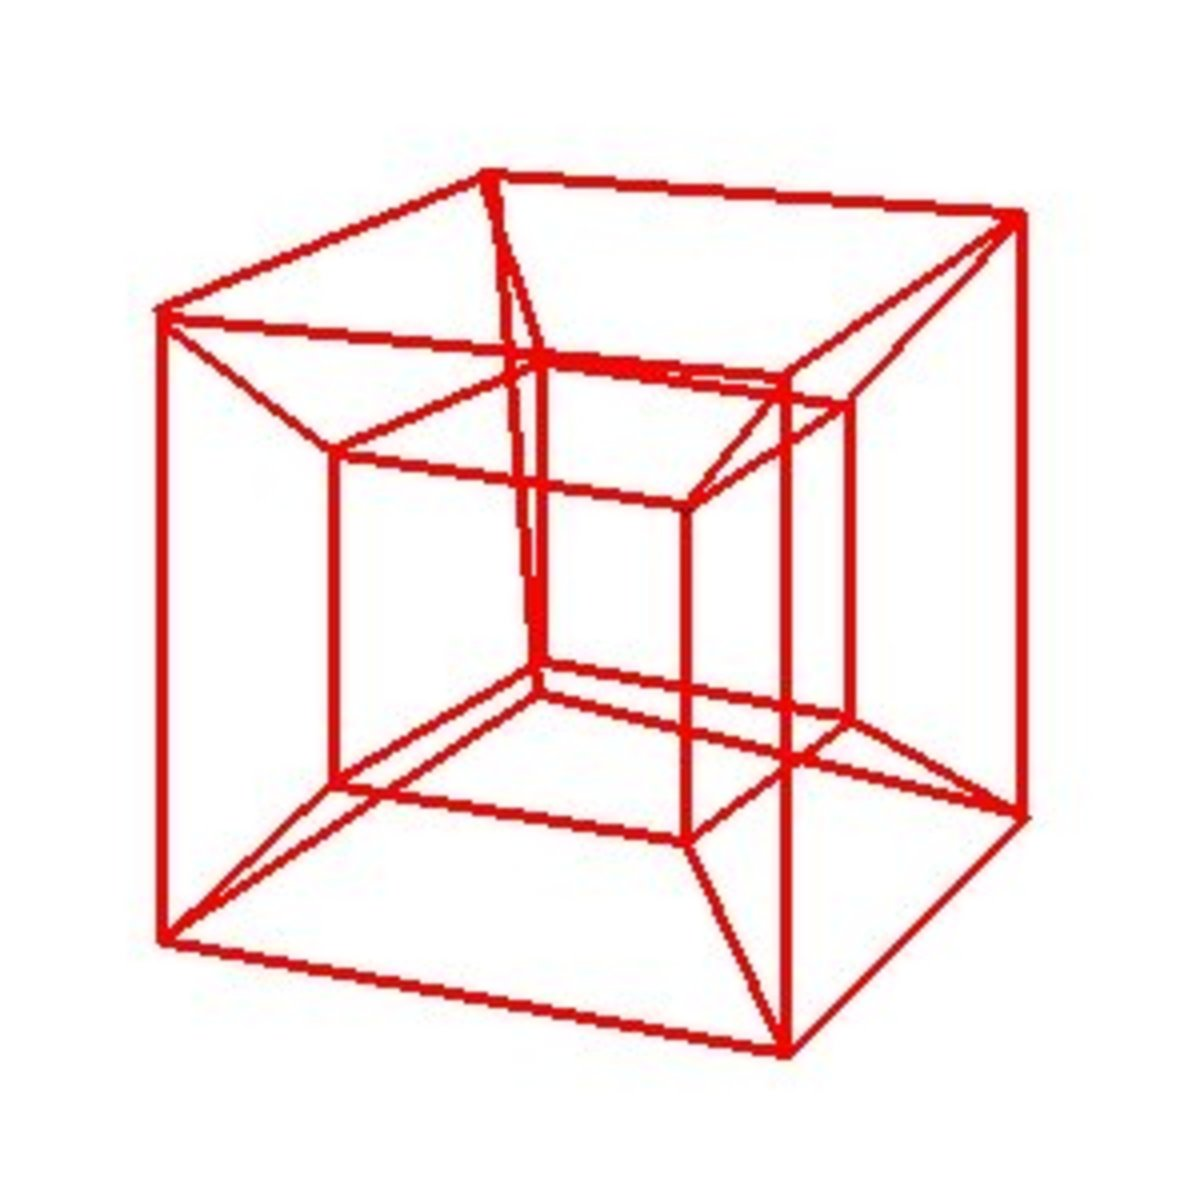 How to Draw a 4D Hypercube (My Way)